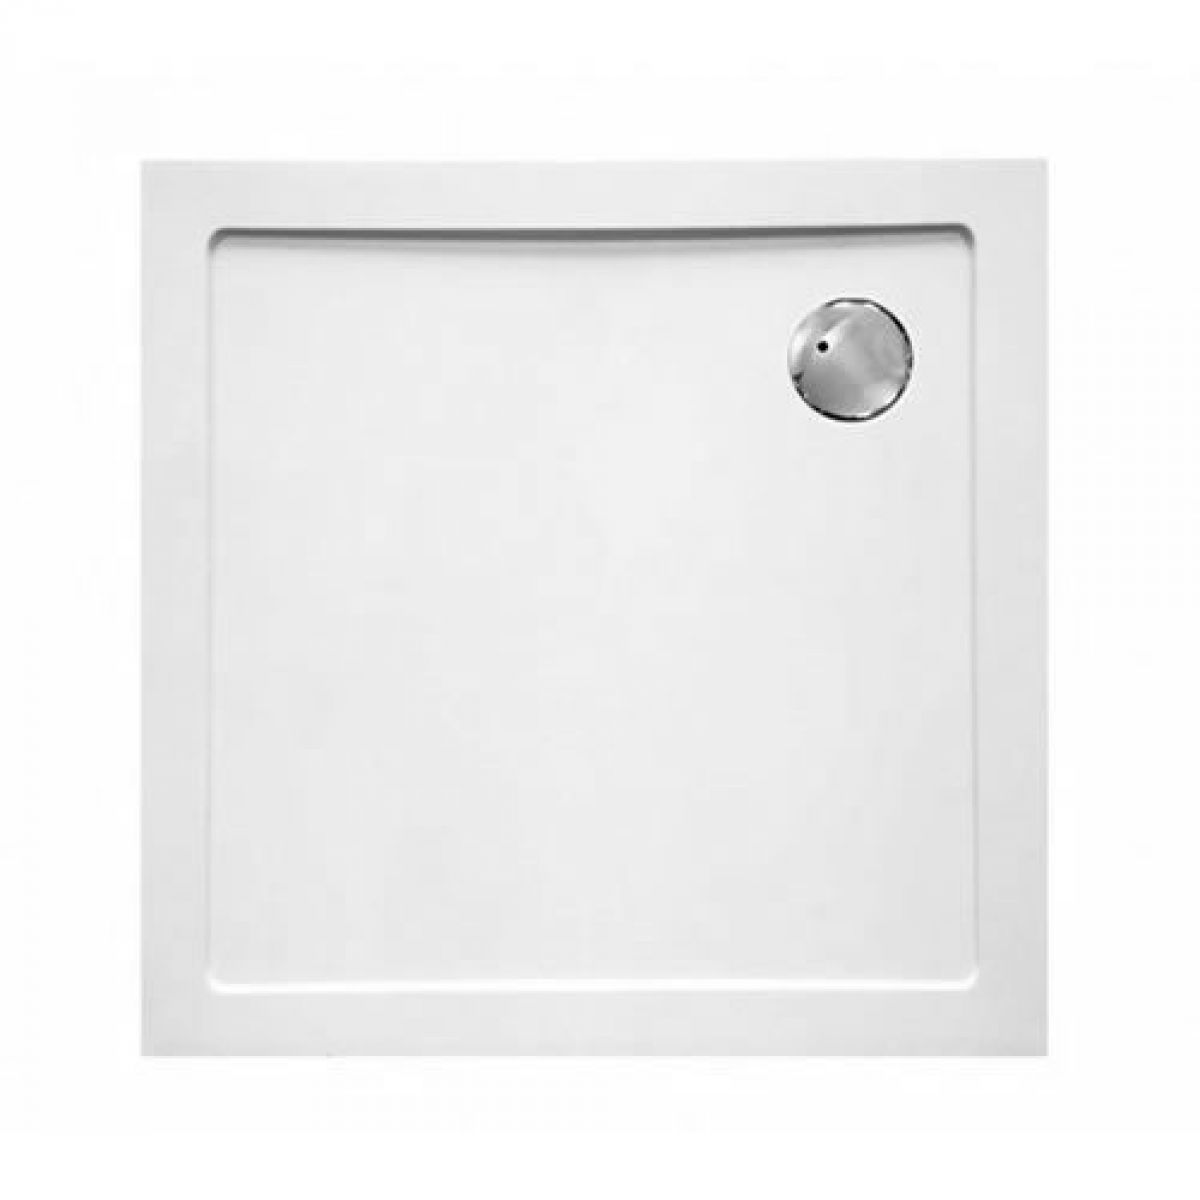 ClearGreen 35mm Low Profile Square Shower Tray : UK Bathrooms